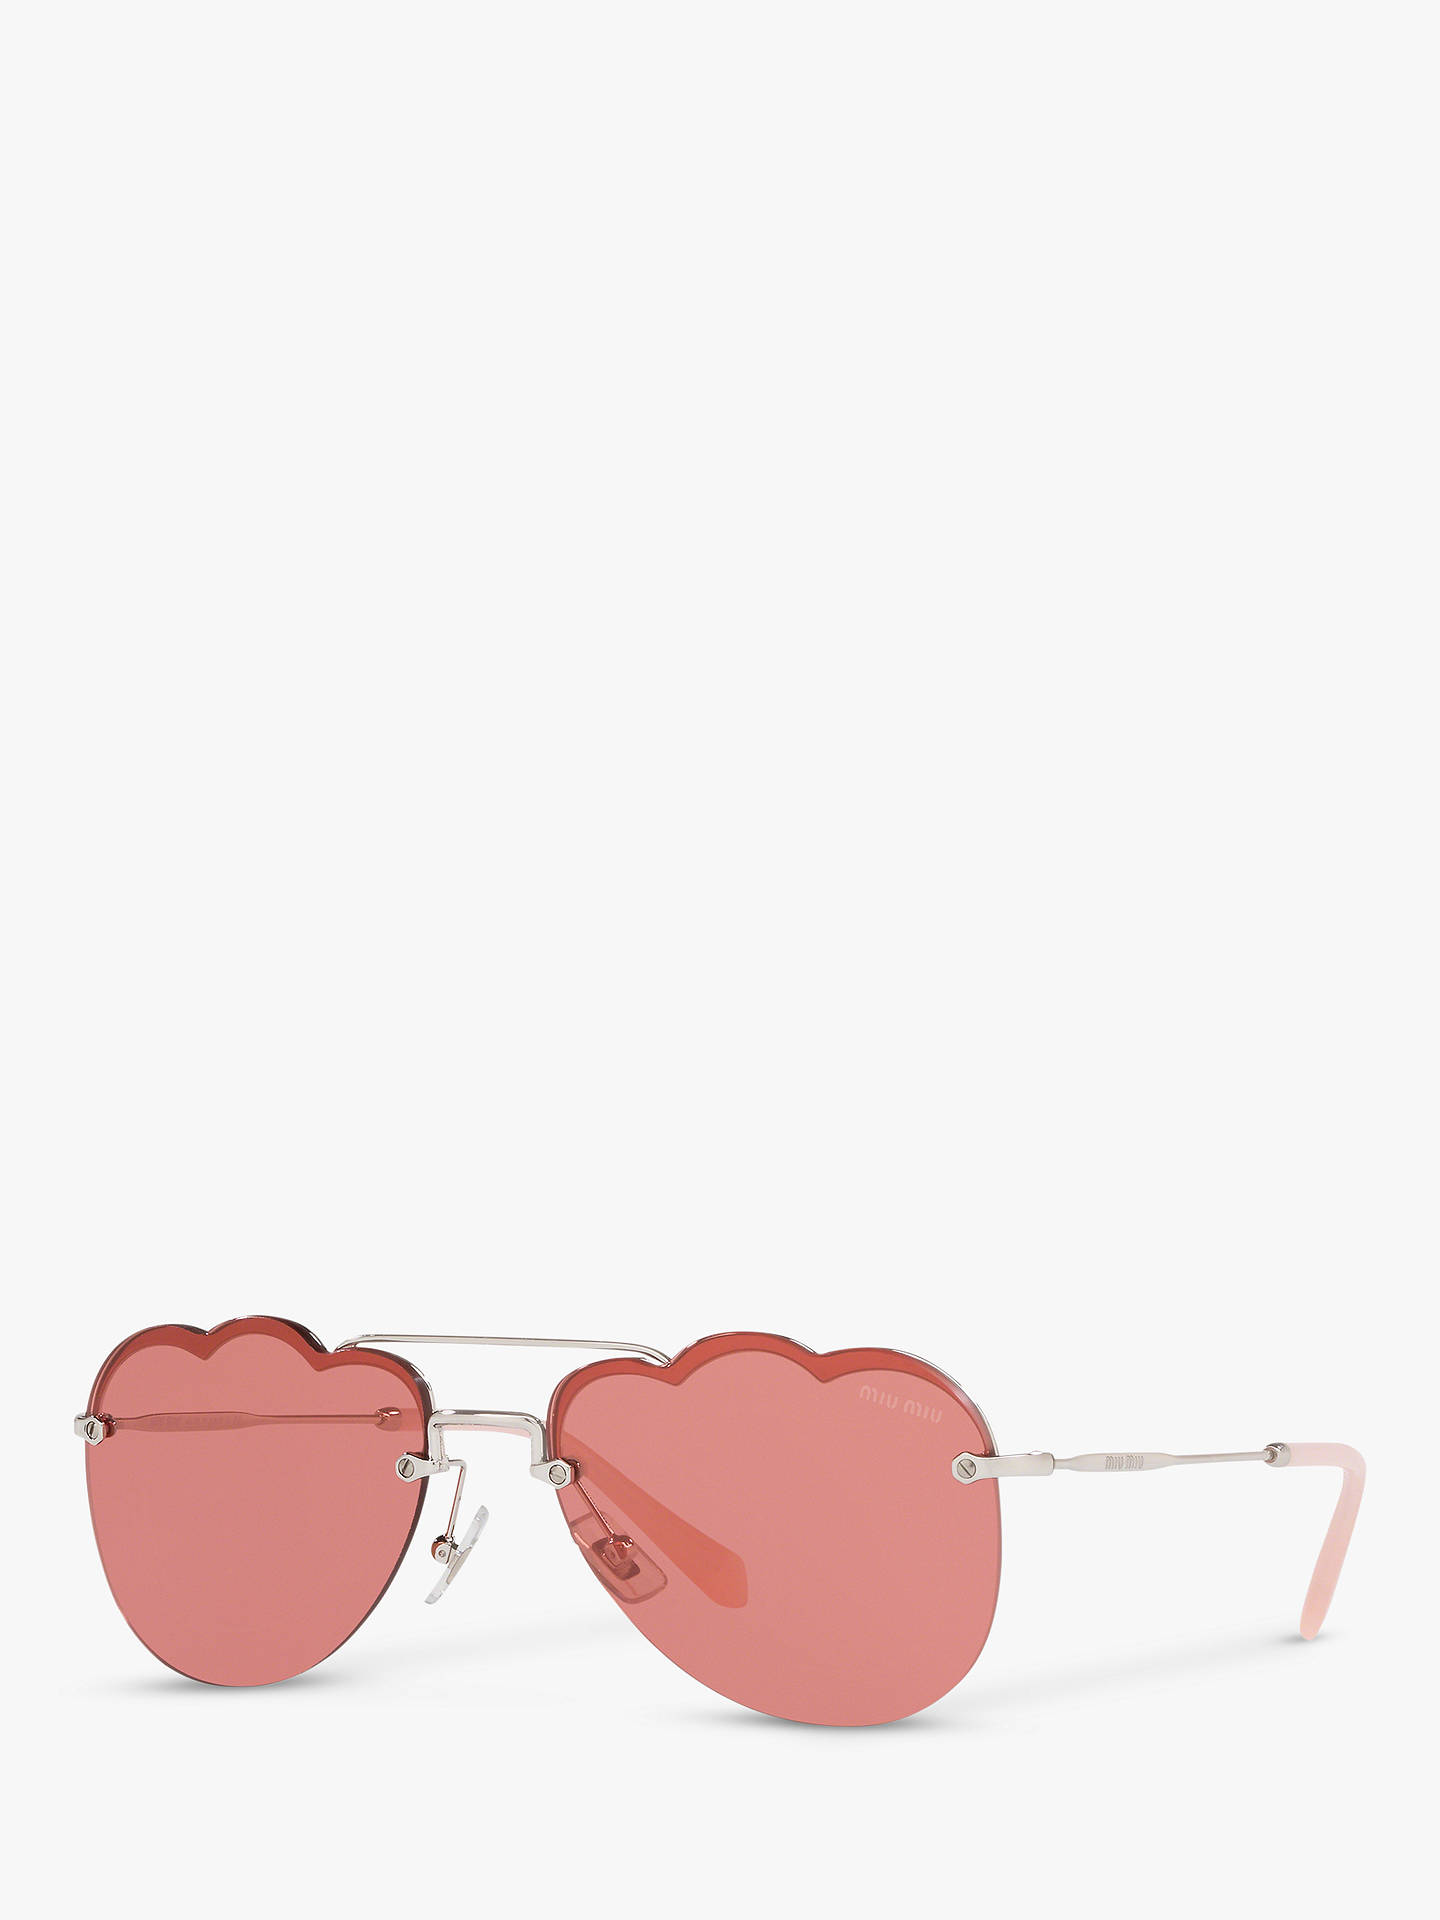 a68b664d0c9 Buy Miu Miu MU 56US Women s Scalloped Aviator Sunglasses